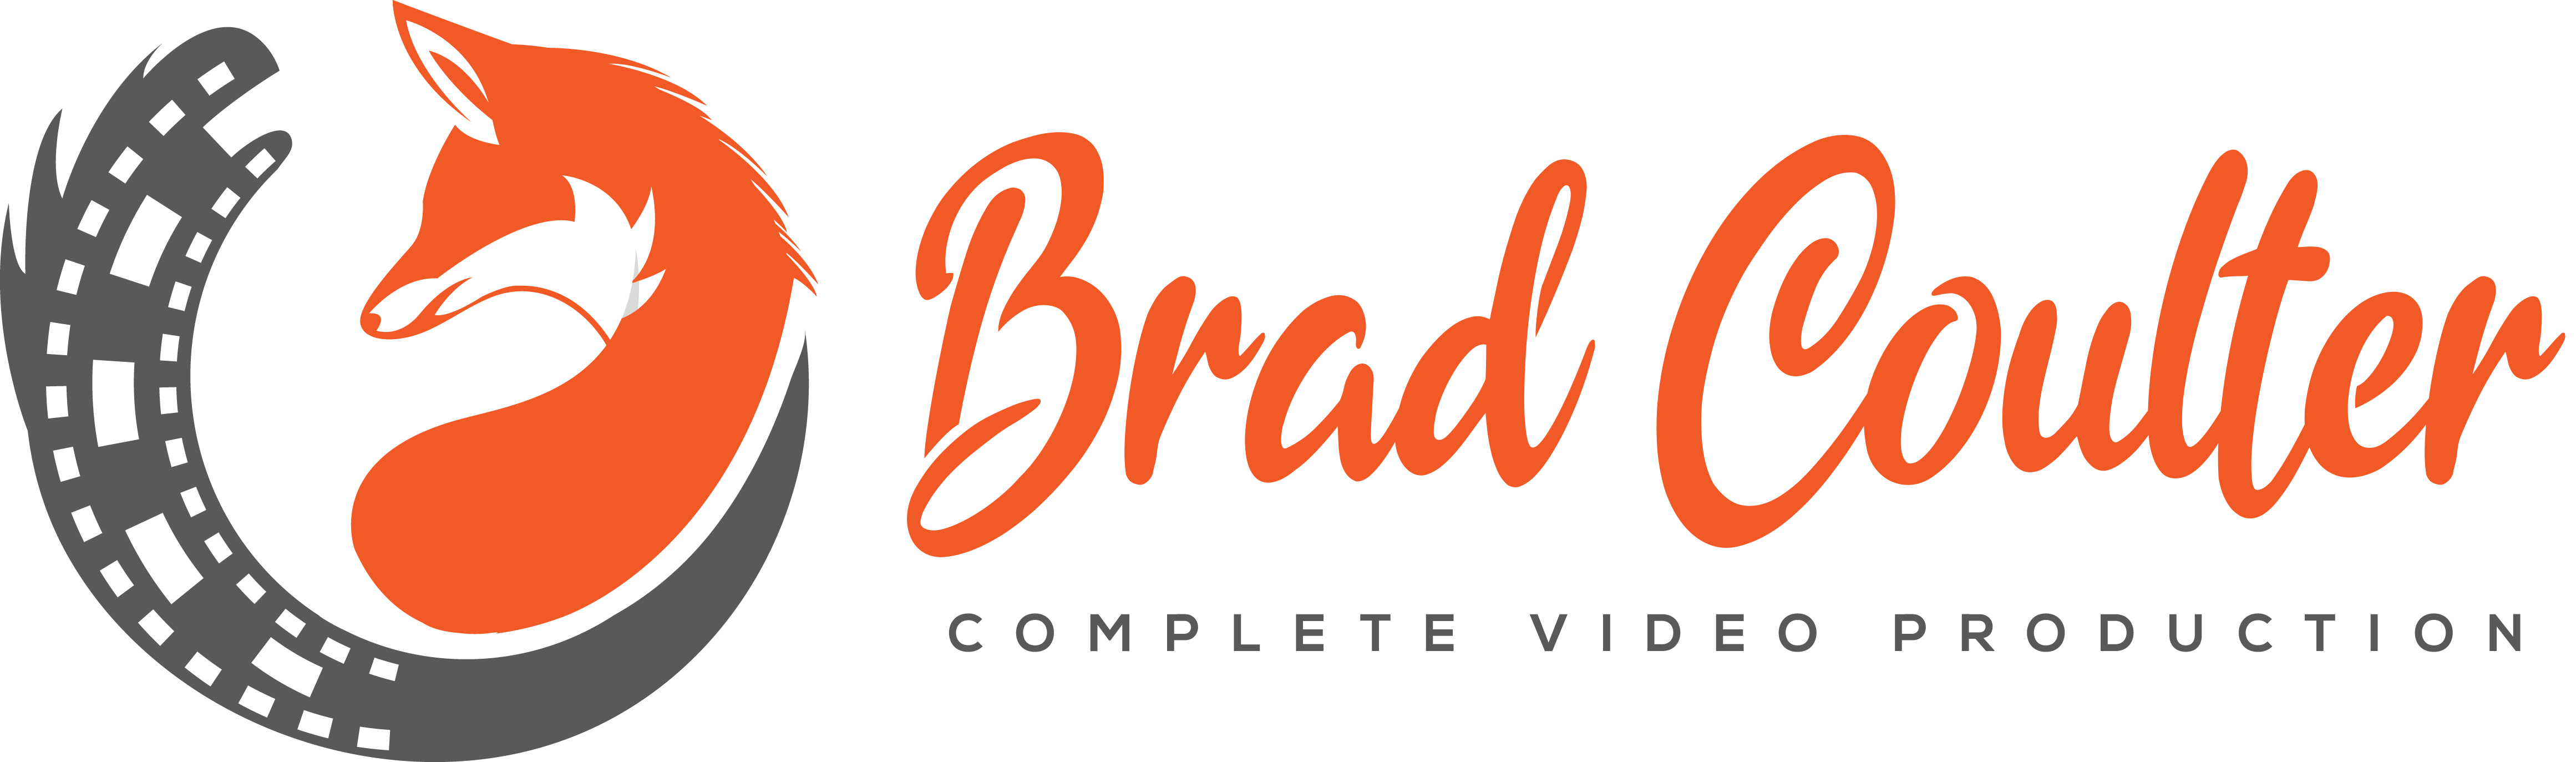 Brad Coulter Complete Video Production